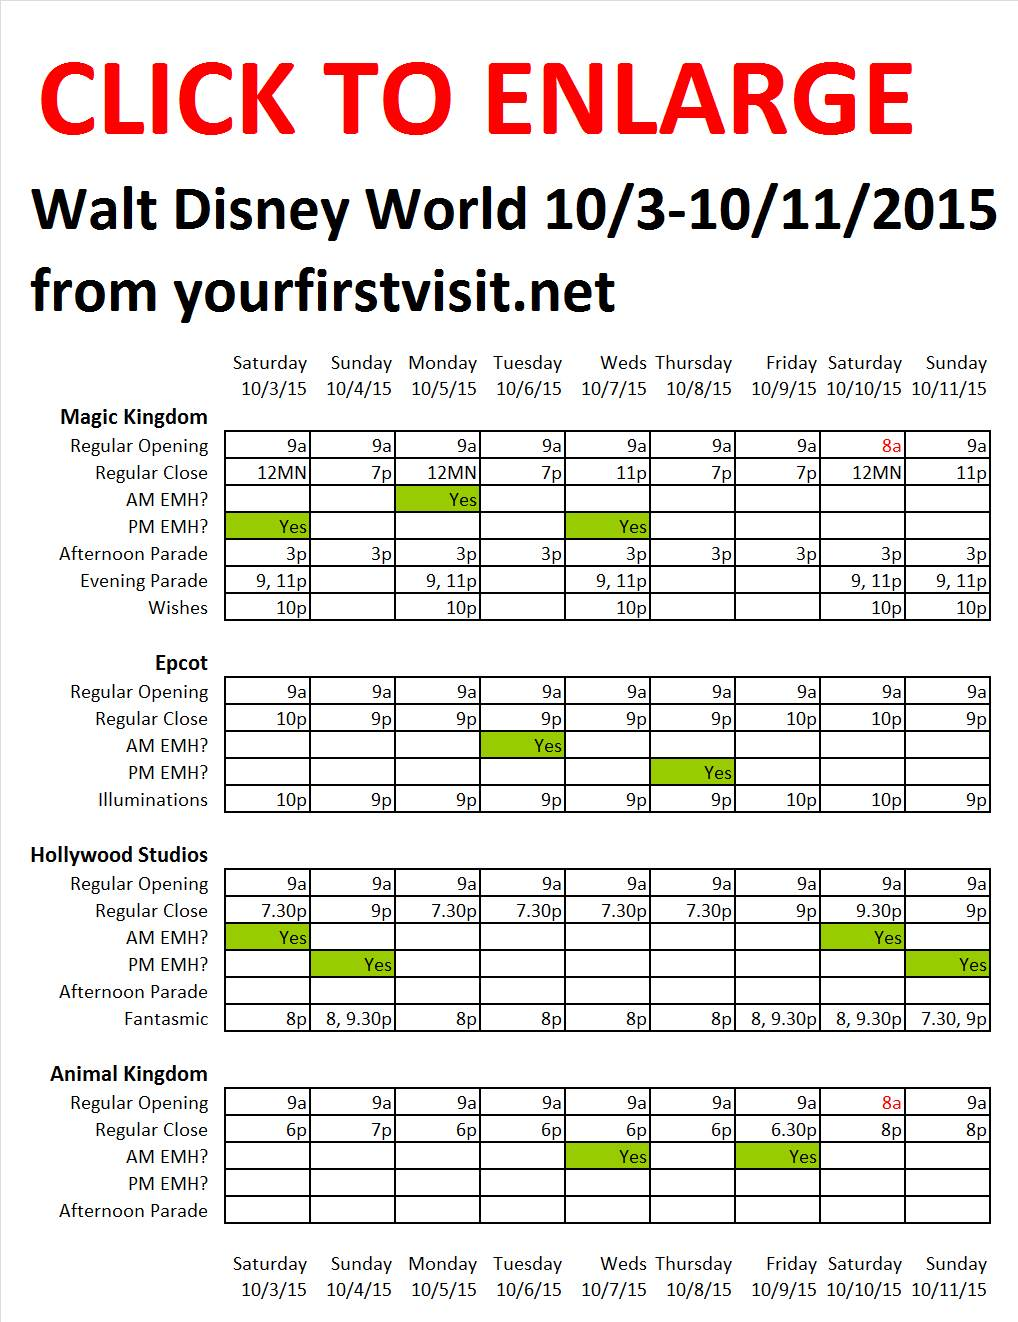 Disney World 10-3 to 10-11-2015 from yourfirstvisit.net